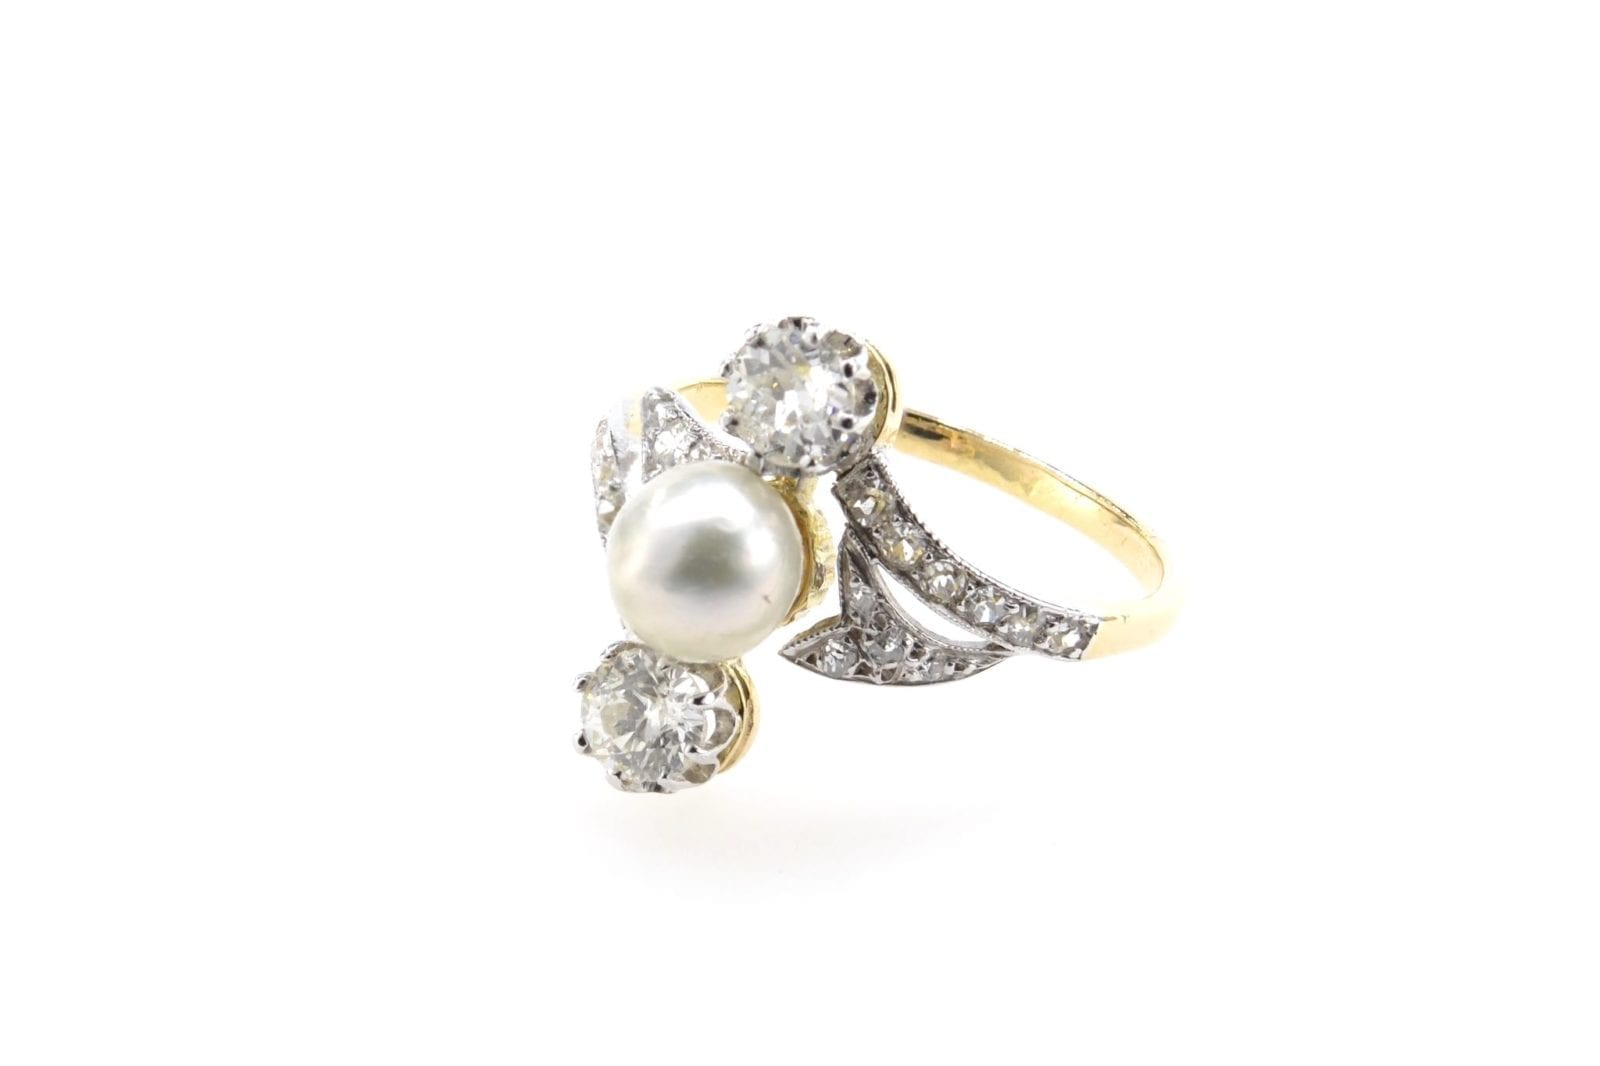 Bague perle diamants 1900 en or jaune 18k